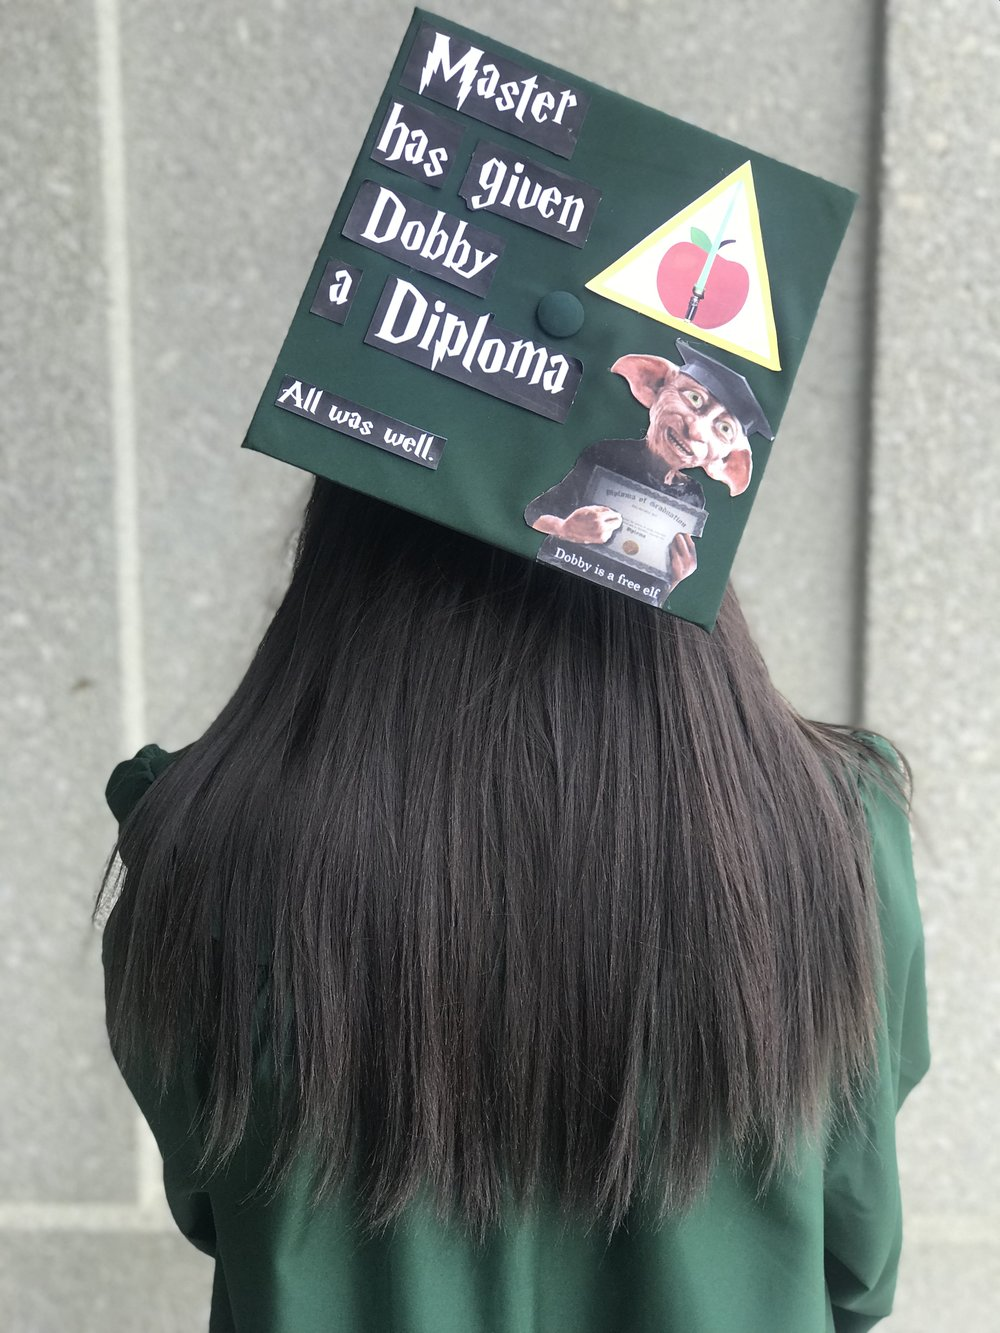 Master has given Dobby a diploma All was well | TetherAndFly.com